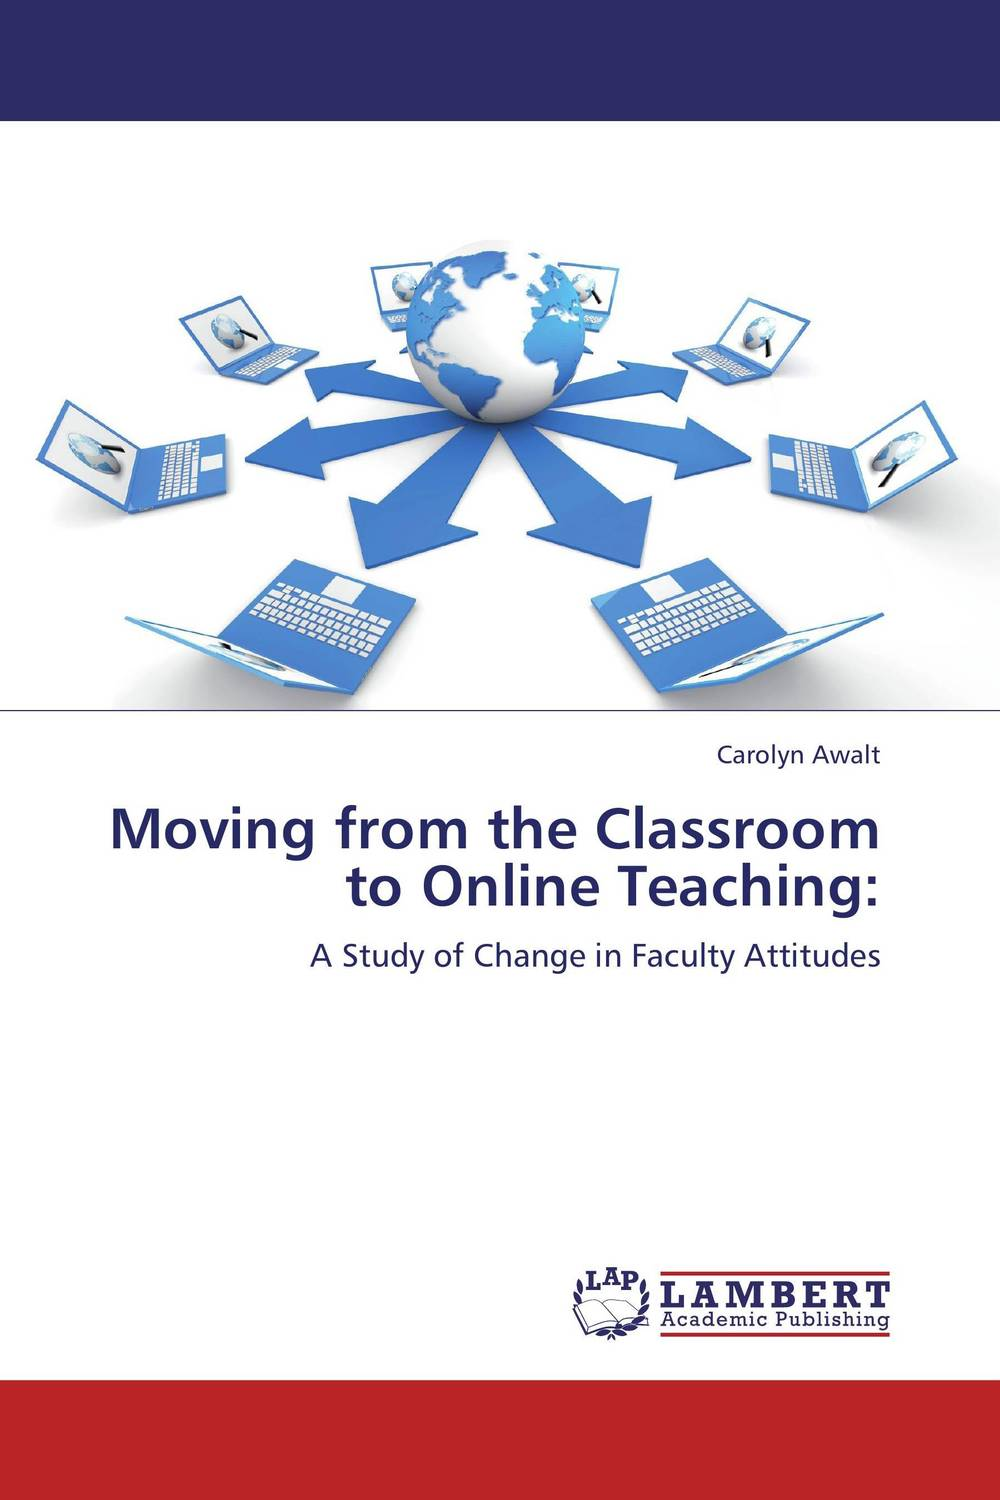 Moving from the Classroom to Online Teaching: leander сервиз столовый соната летний луг 25 пр